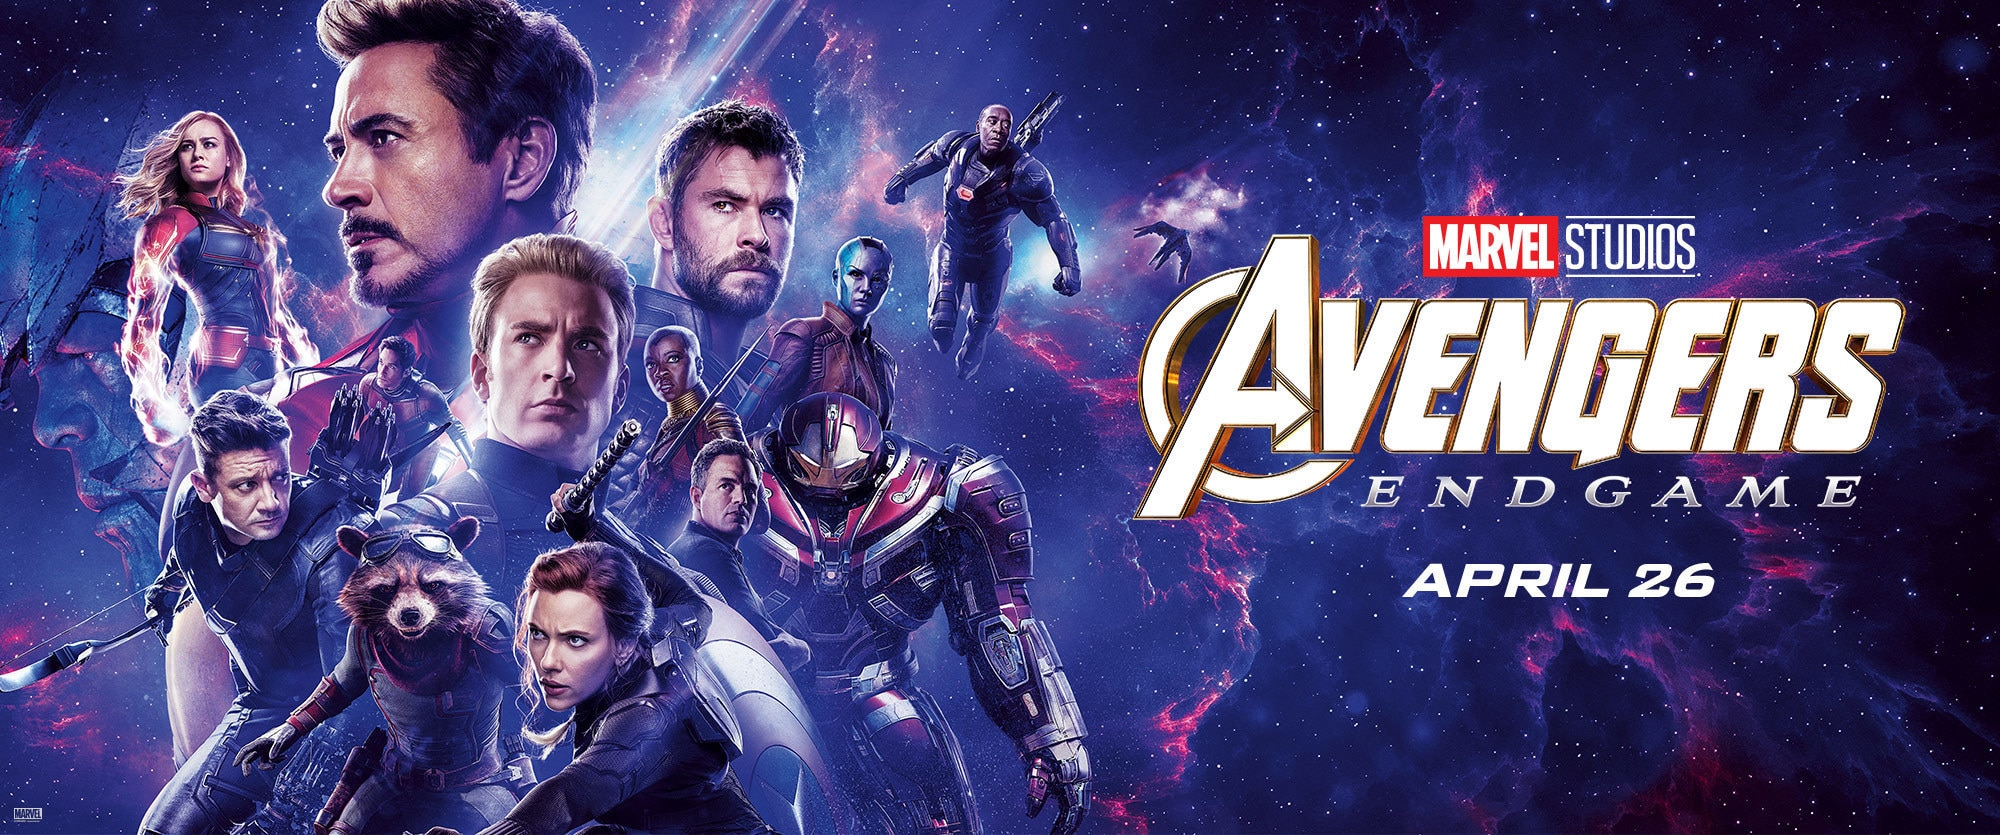 Avengers: Endgame_Movie Page_Hero Banner2